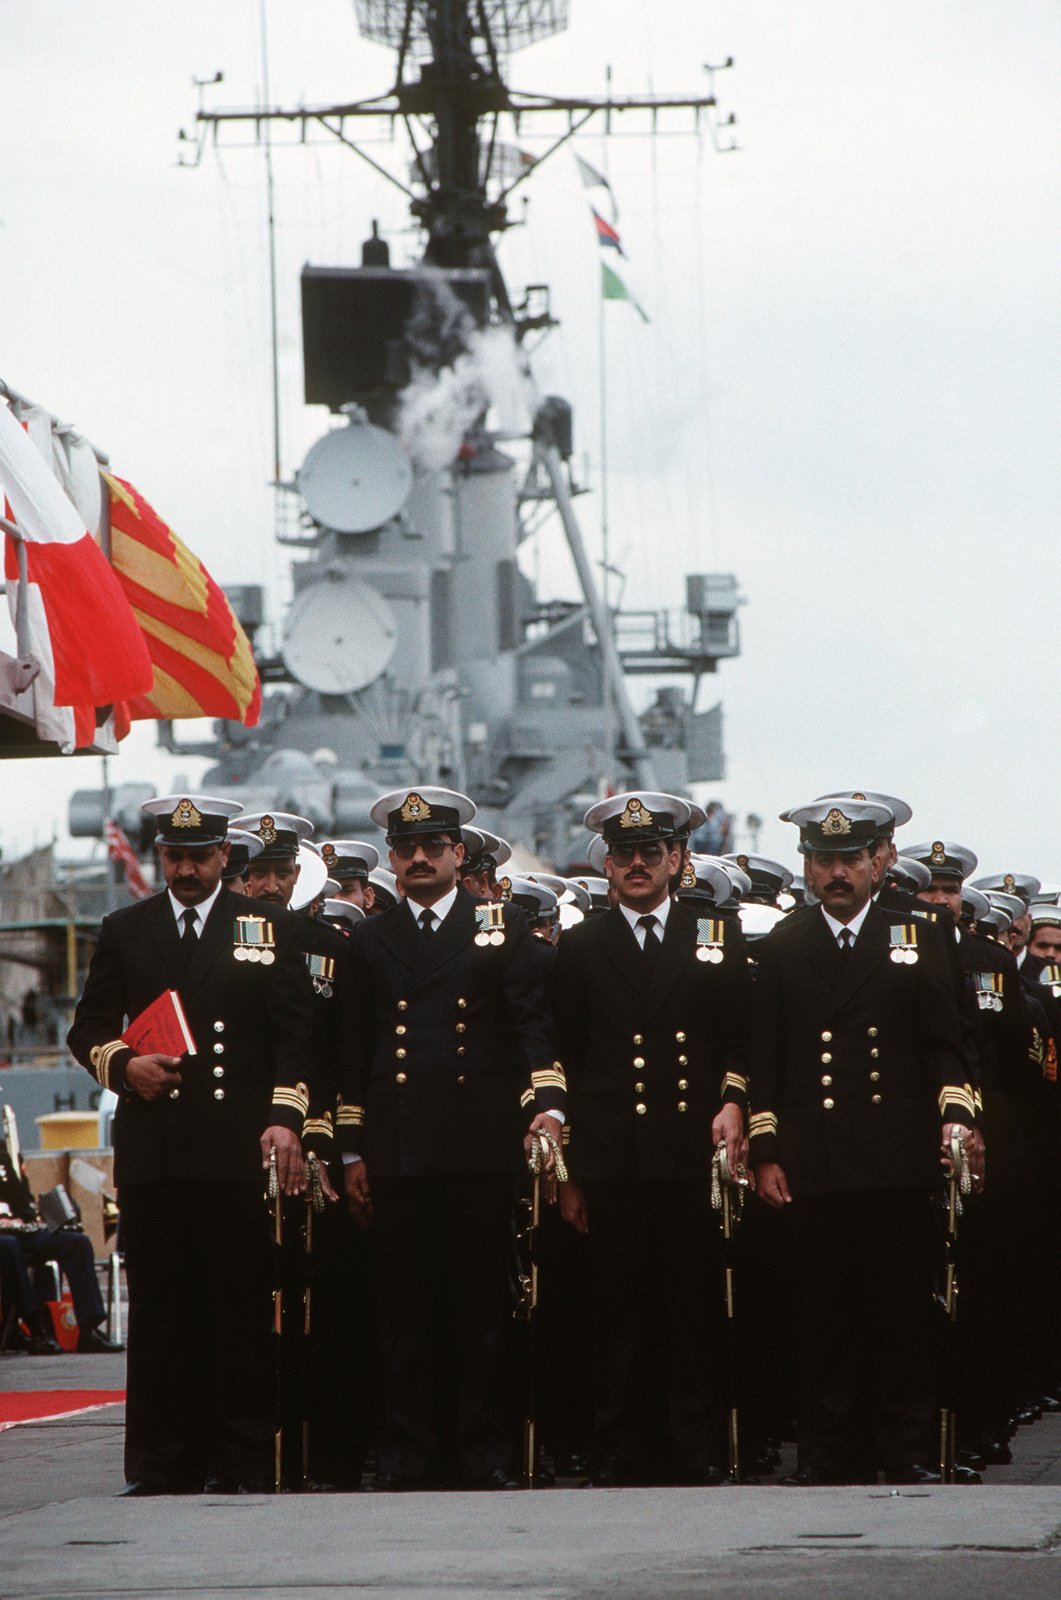 Pakistani officers stand in formation during the commissioning ceremony of the former Guided Missile Frigate USS BROOKE (FFG 1) as the ship is transferred to the Pakistani navy and assumes the name PNS KHAIBAR (D 163).  The former frigate USS O'CALLAHAN (FF 1051) is also being transferred and assuming the name PNS ASLAT (F 265)